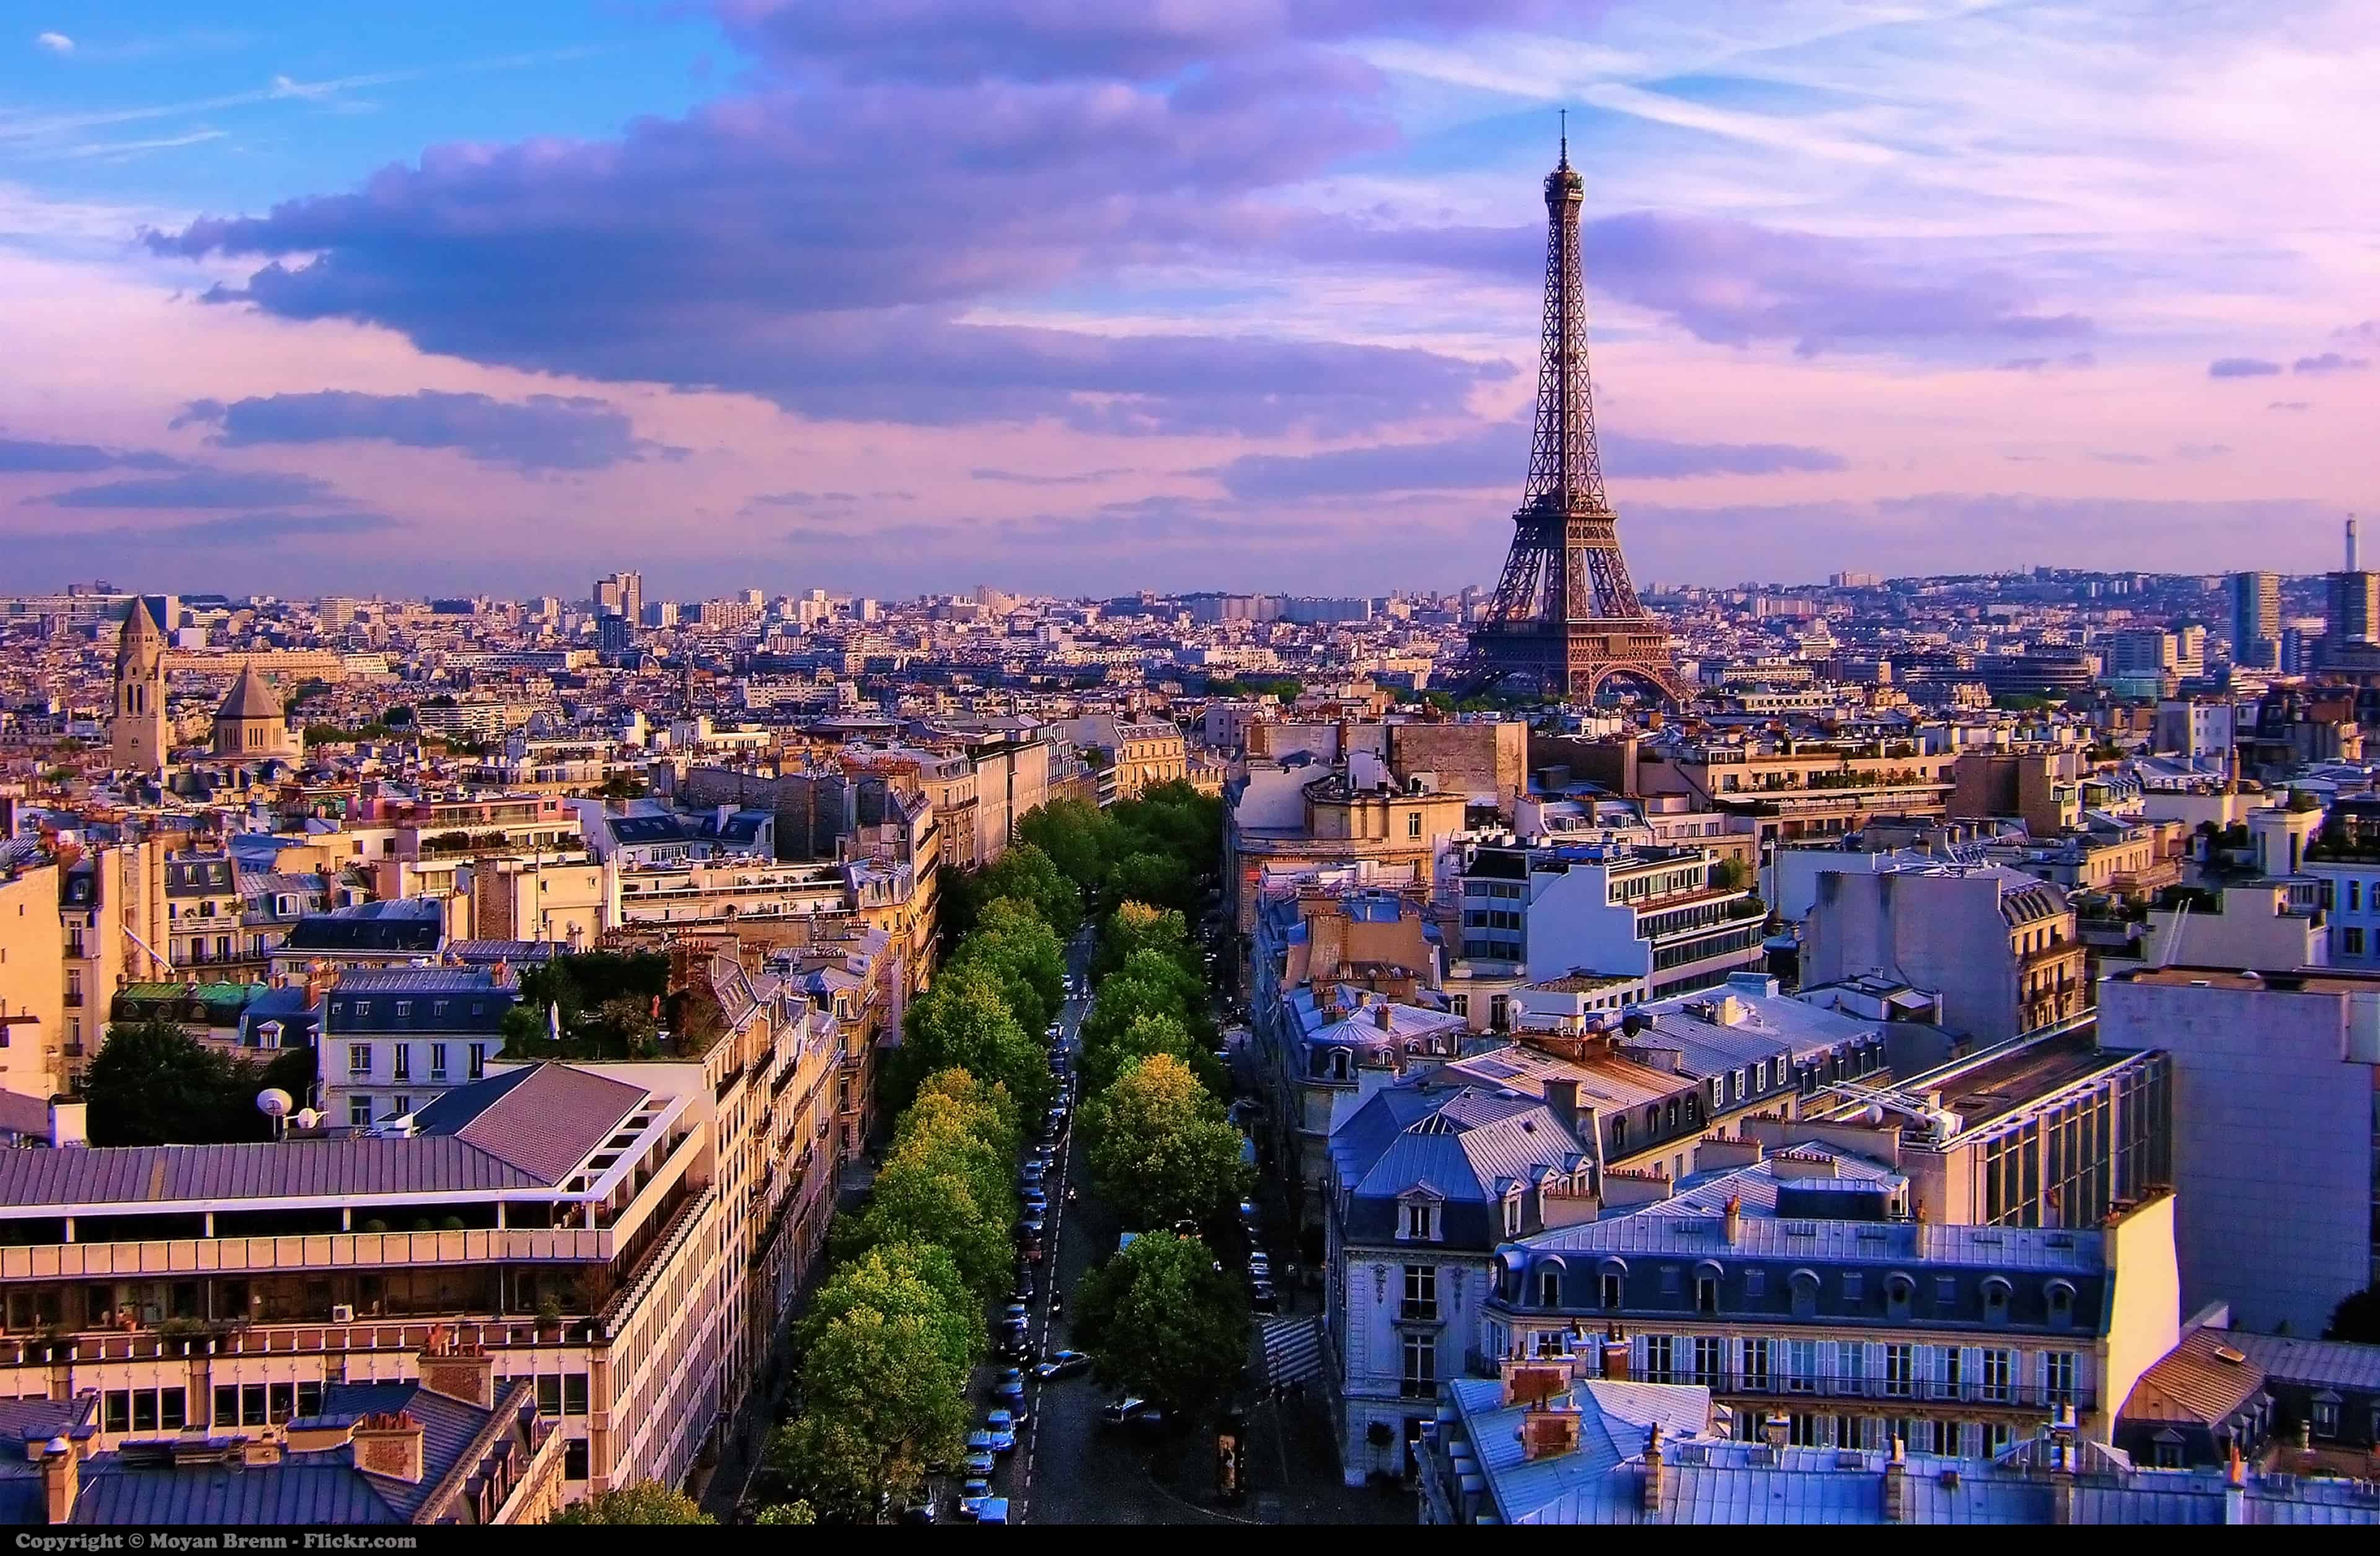 Paris - 5 Places in Europe for an Epic Cross-Country Trip